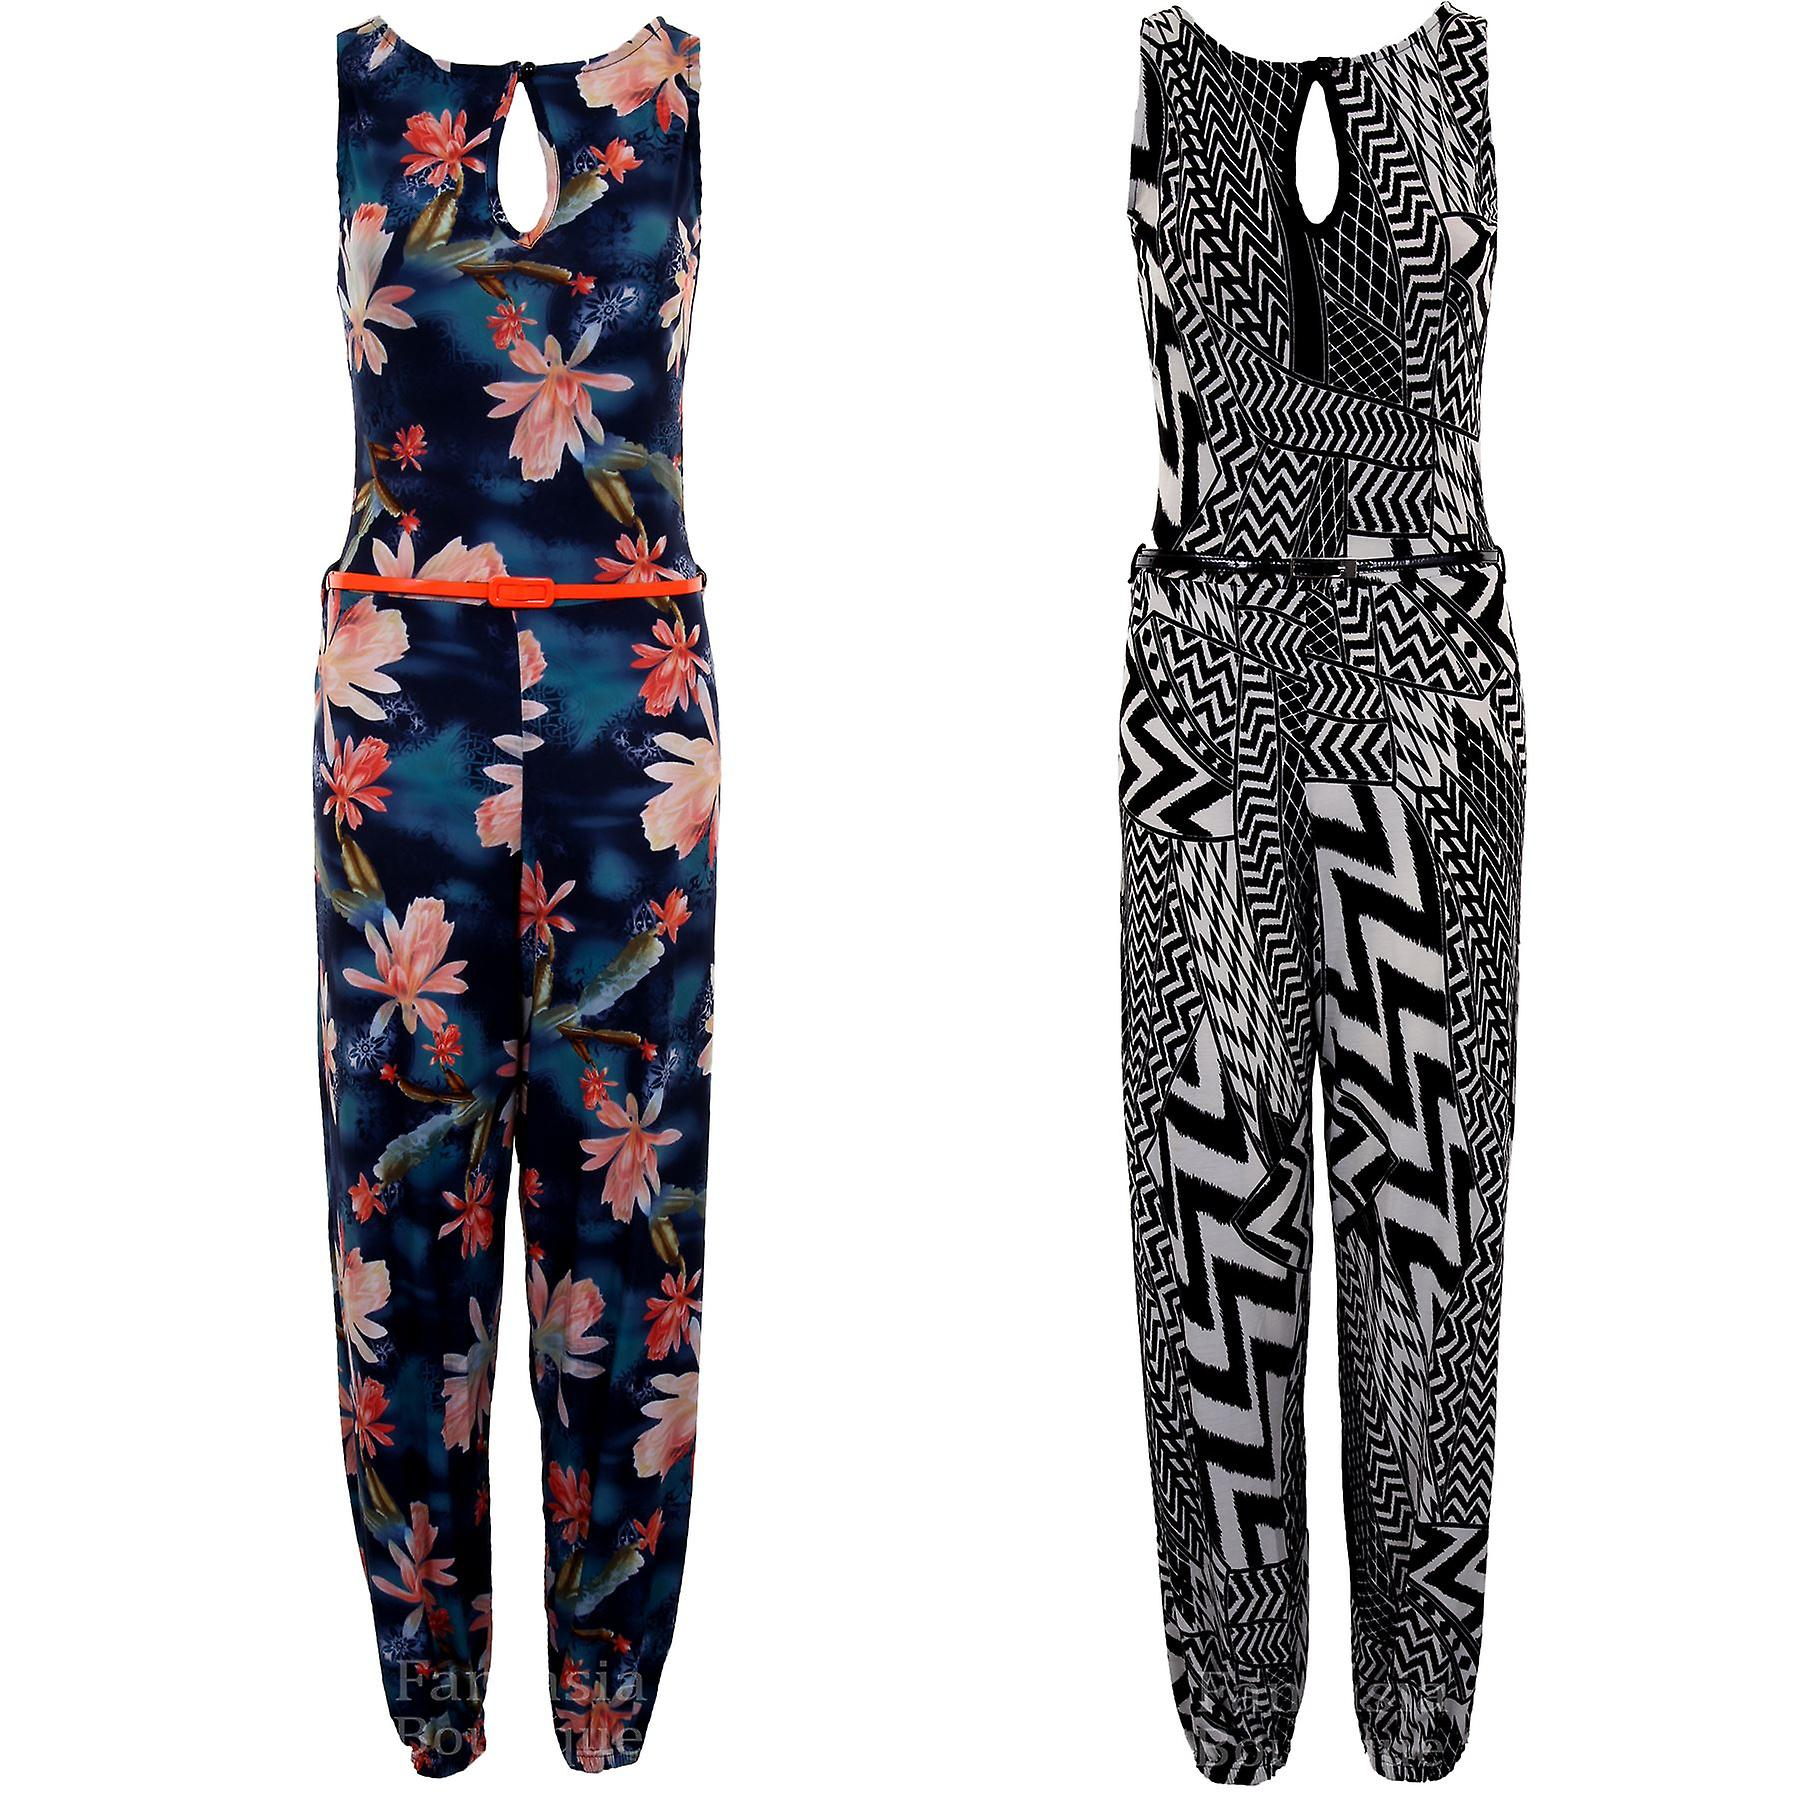 Ladies Sleeveless Belted All In One Floral Zig Zag Print Women's Smart Evening Jumpsuit